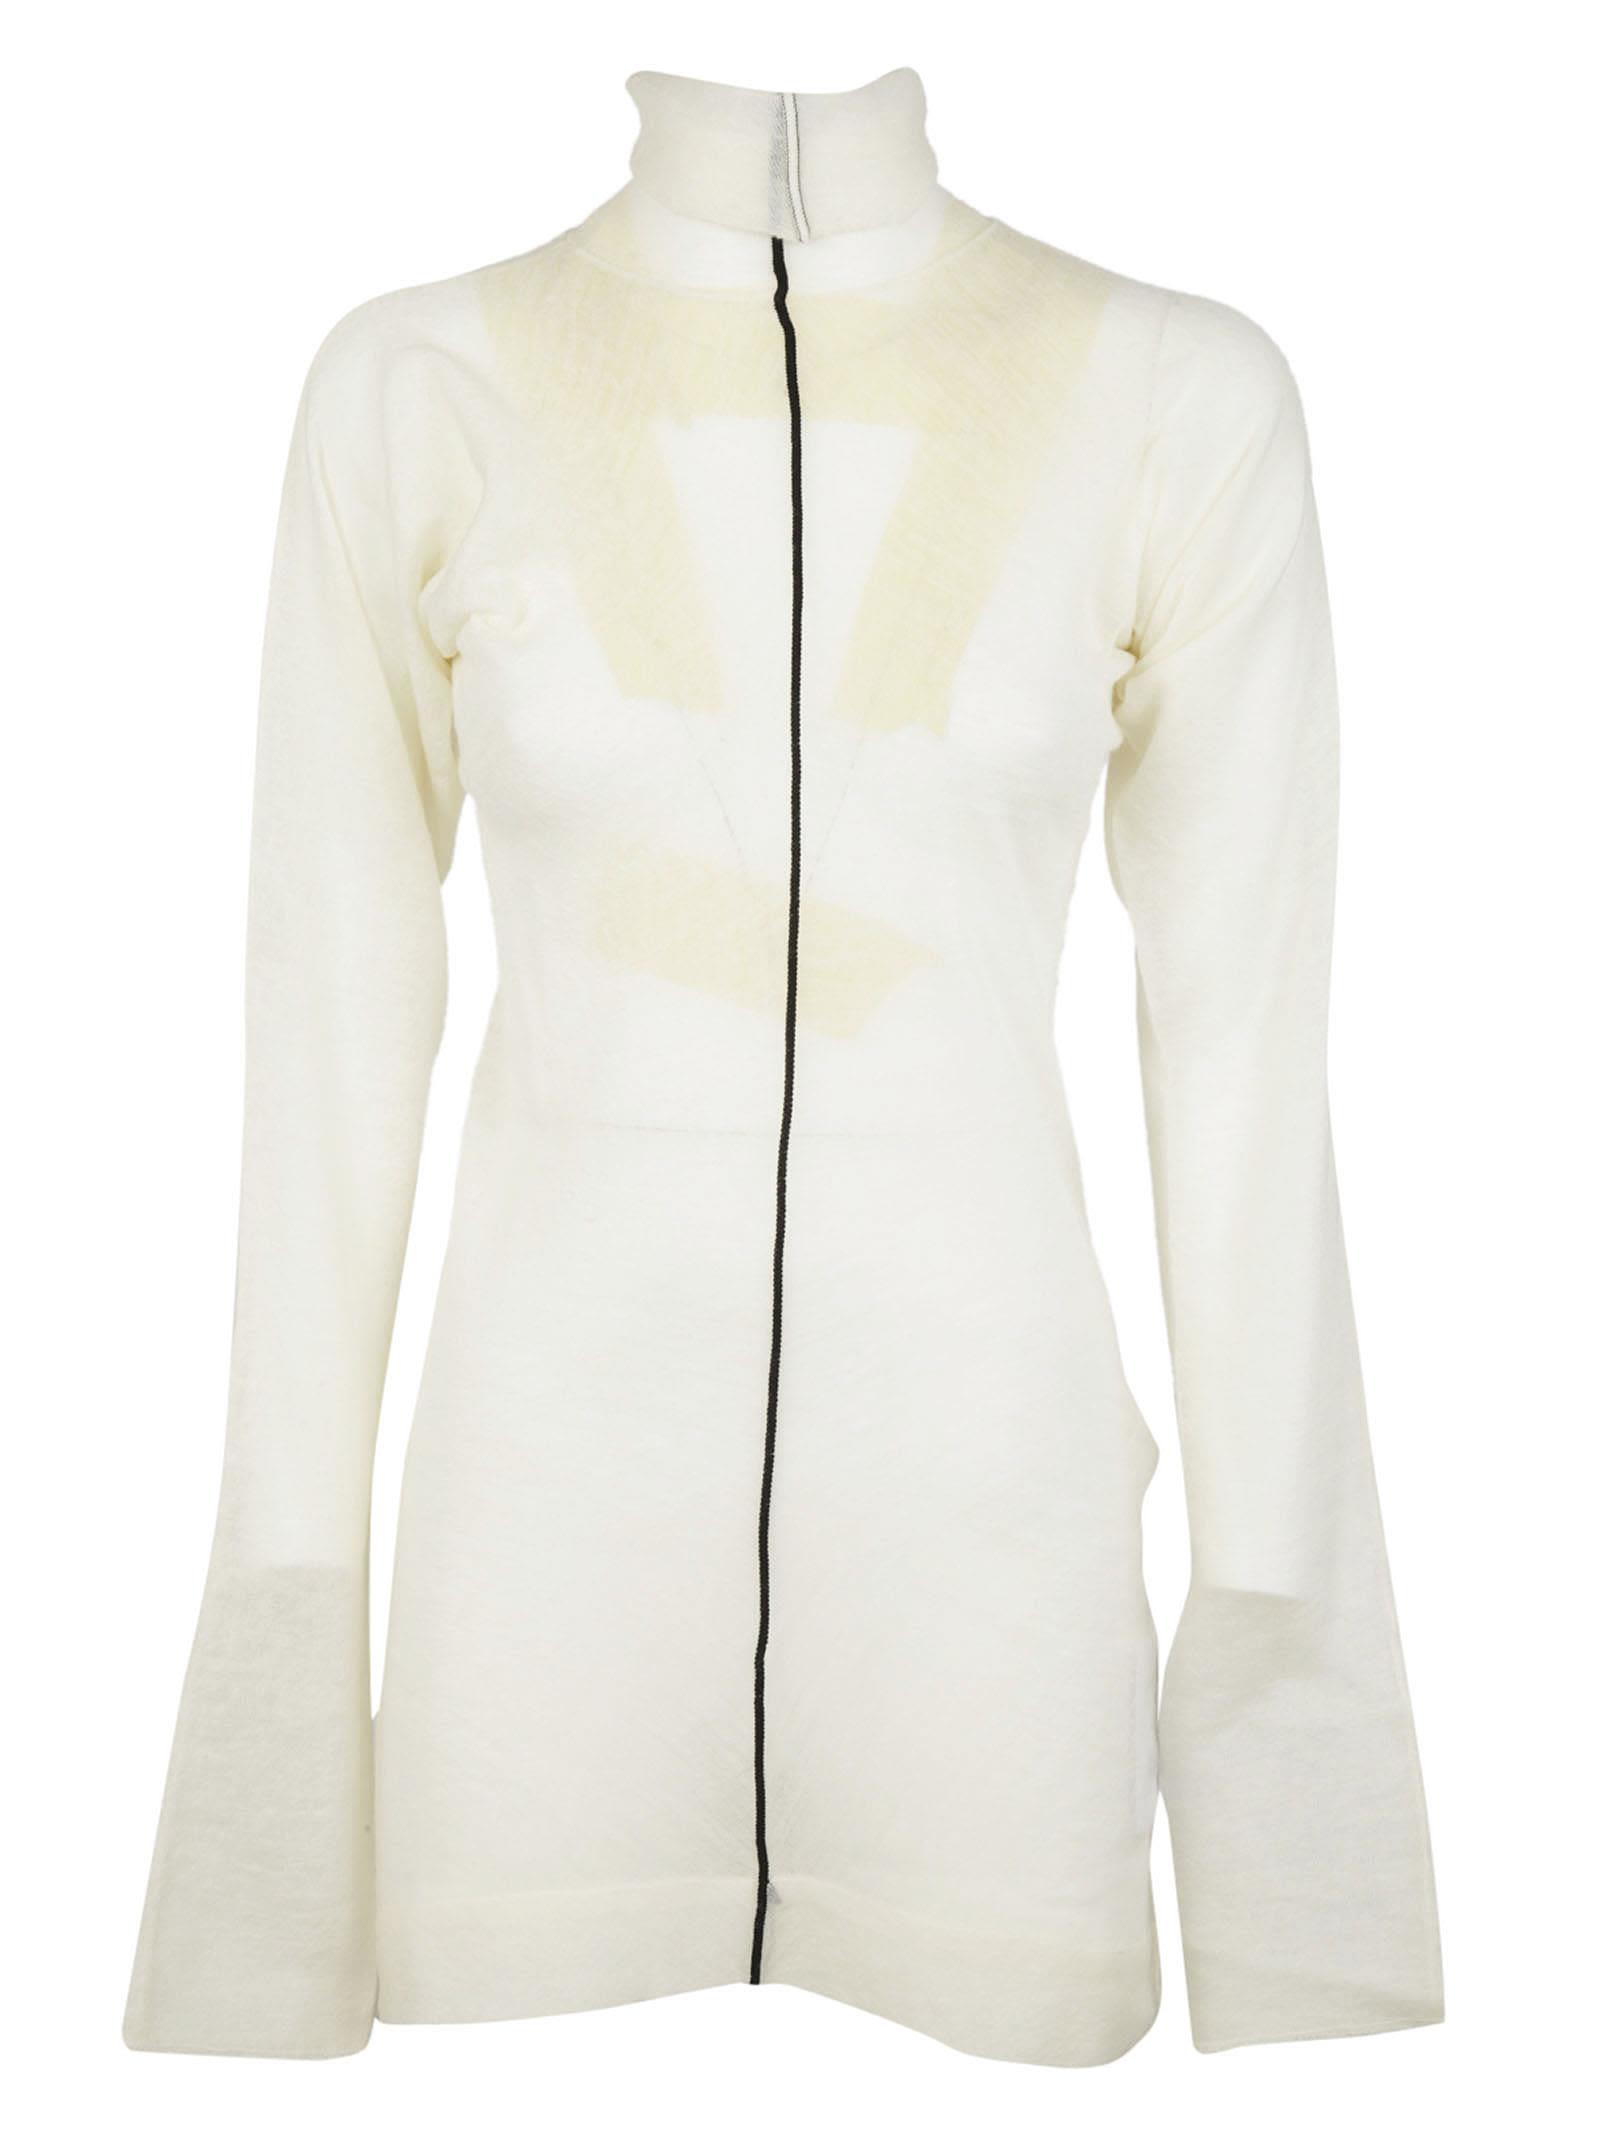 Celine - Celine Turtleneck Sweater - Off white, Women's Sweaters ...